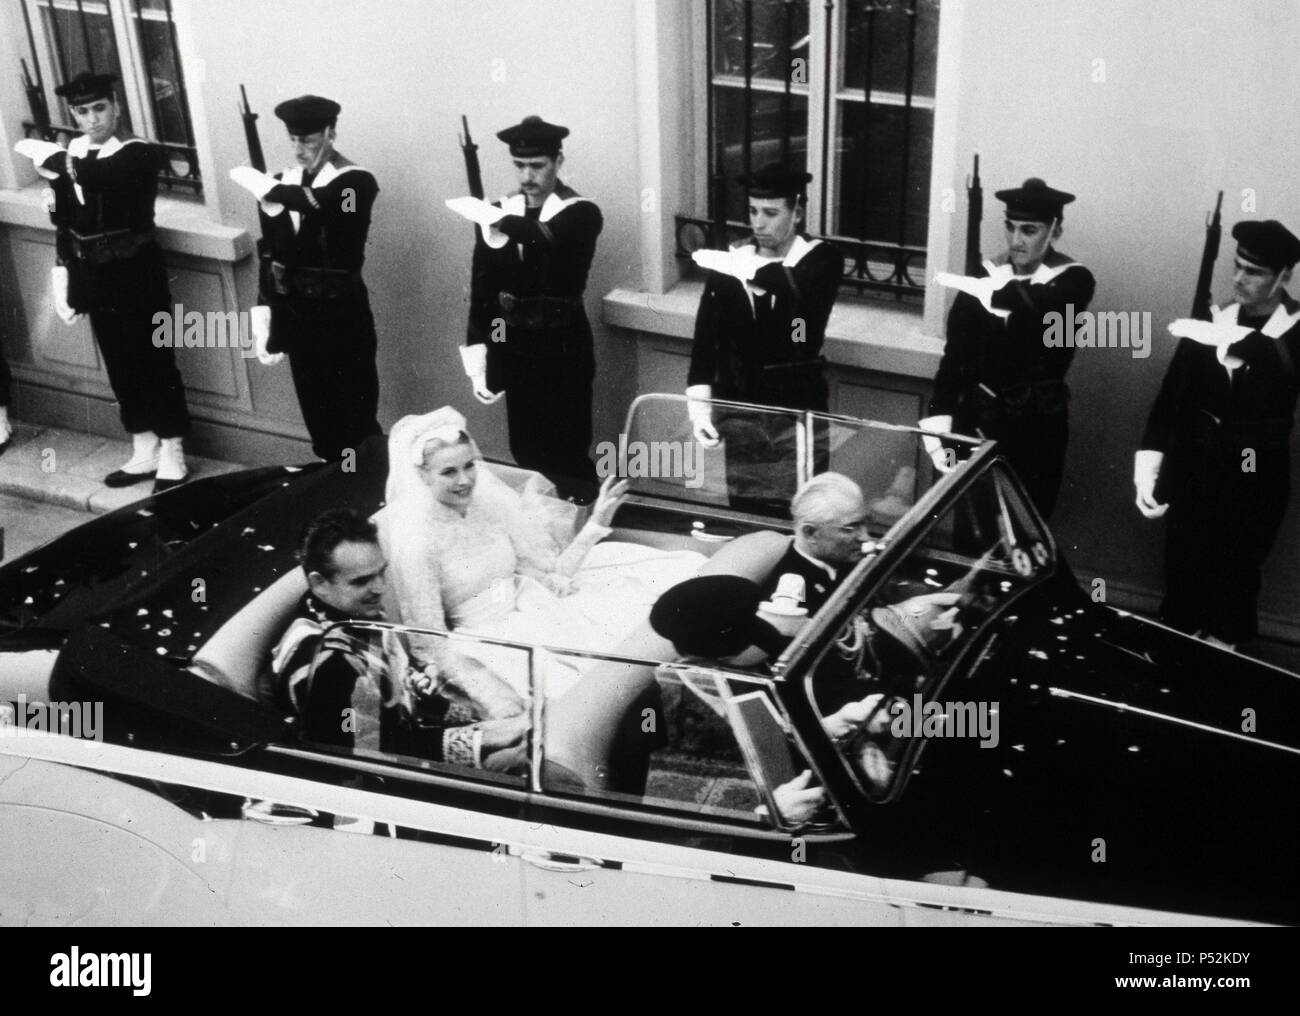 Grace and Rainier drive through the streets of Montecarlo after their wedding service, Monaco  1956. - Stock Image